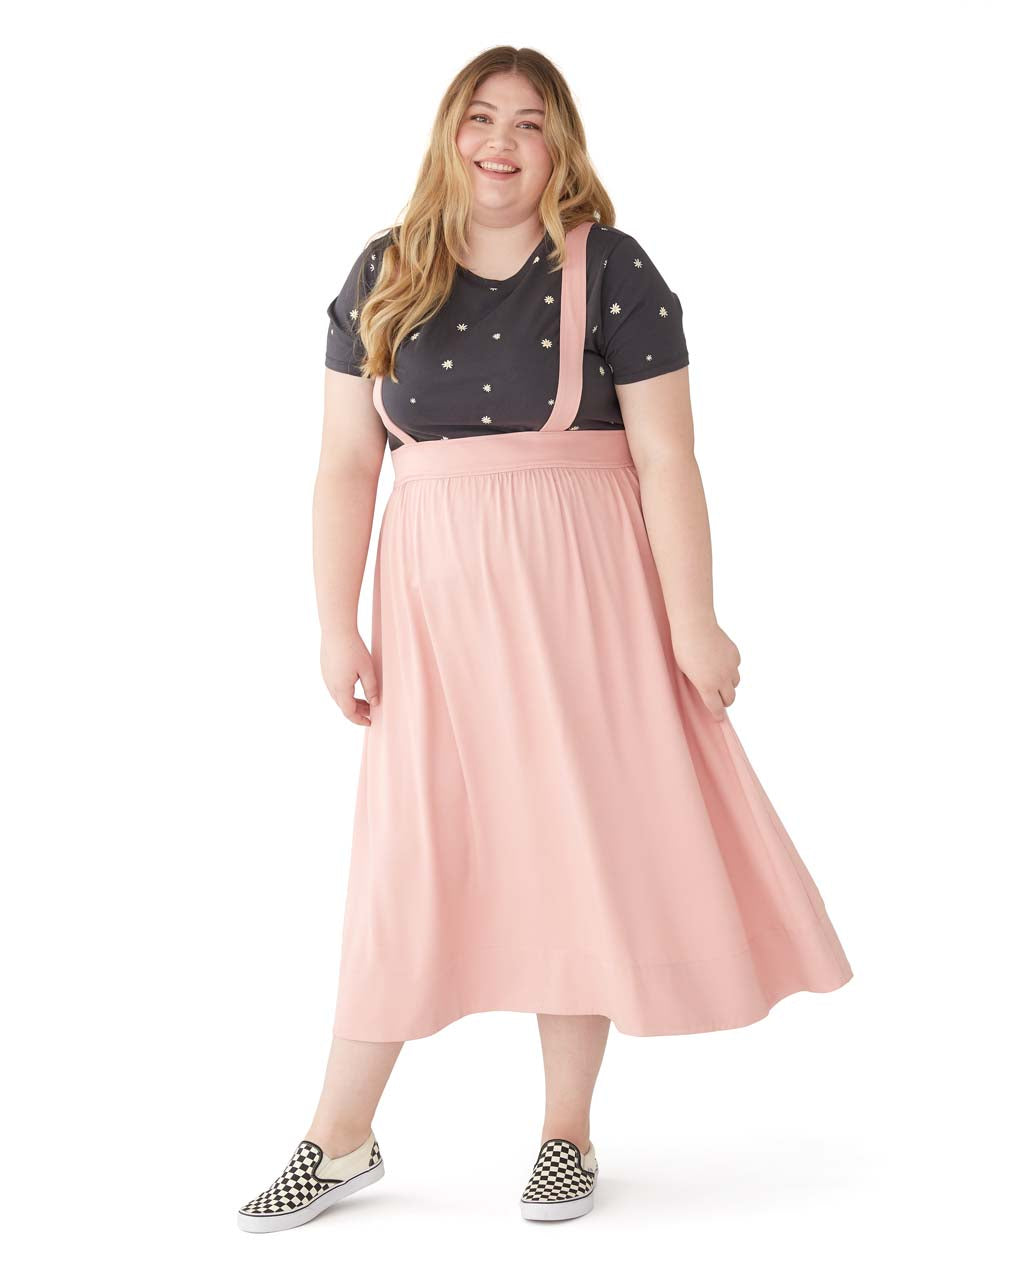 This Pinafore Skirt comes in pink.